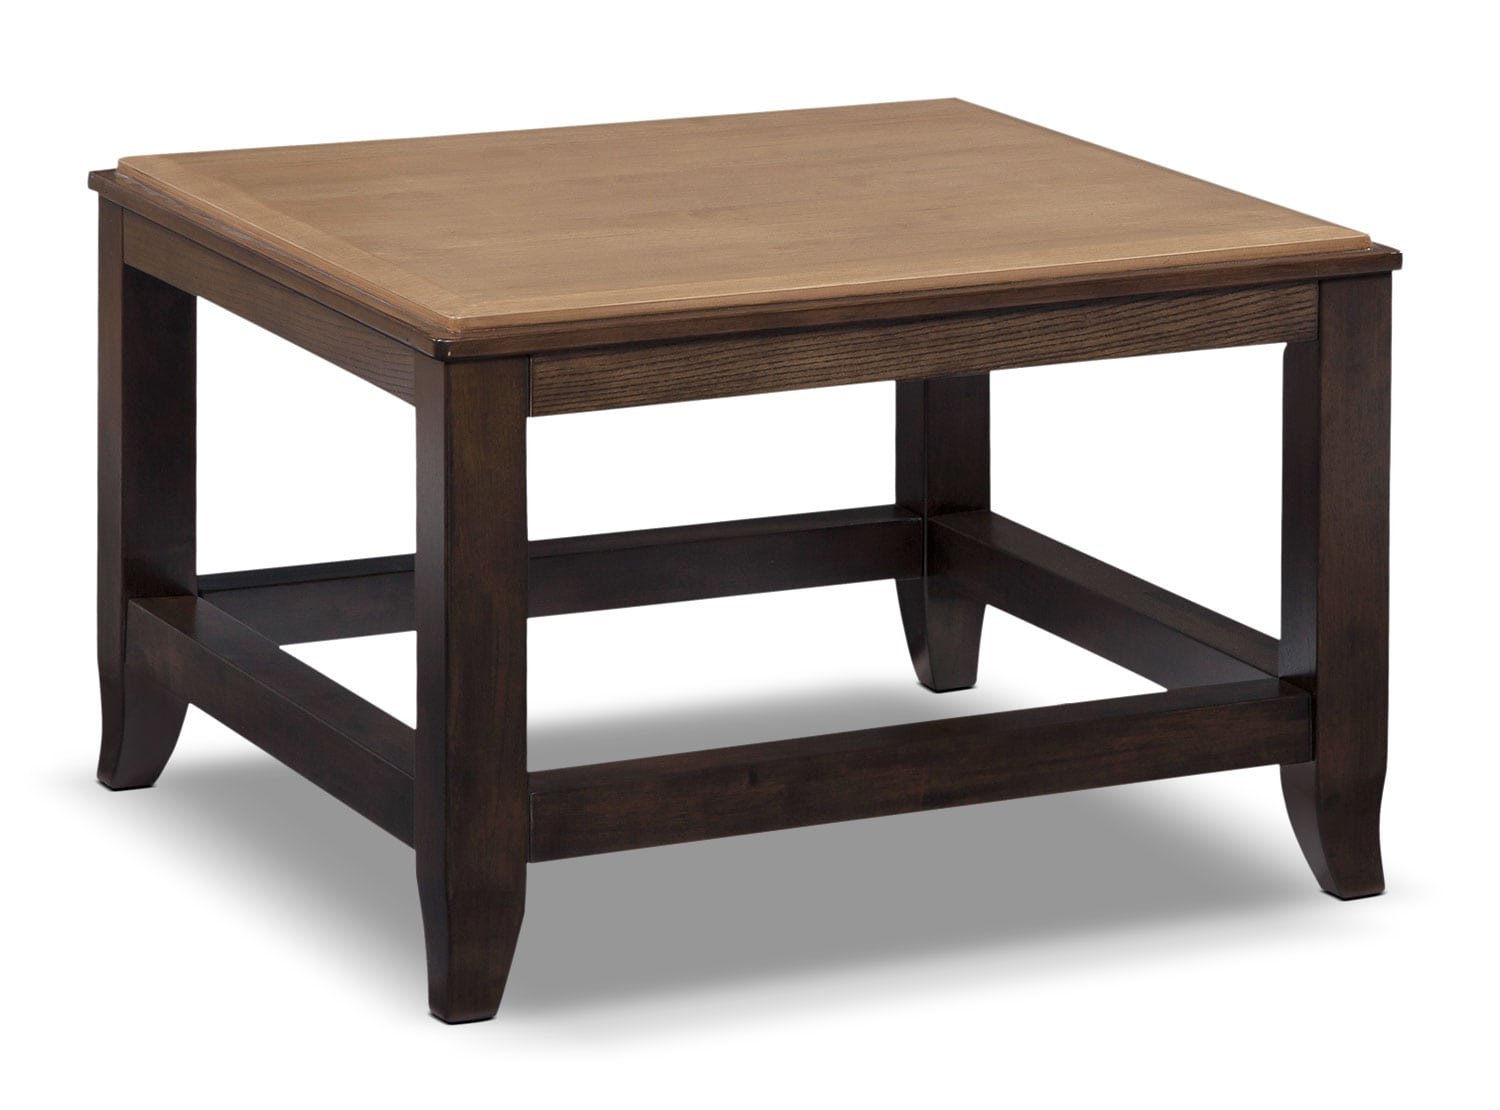 Accent and Occasional Furniture - Oslo Coffee Table - Oslo Coffee Table The Brick